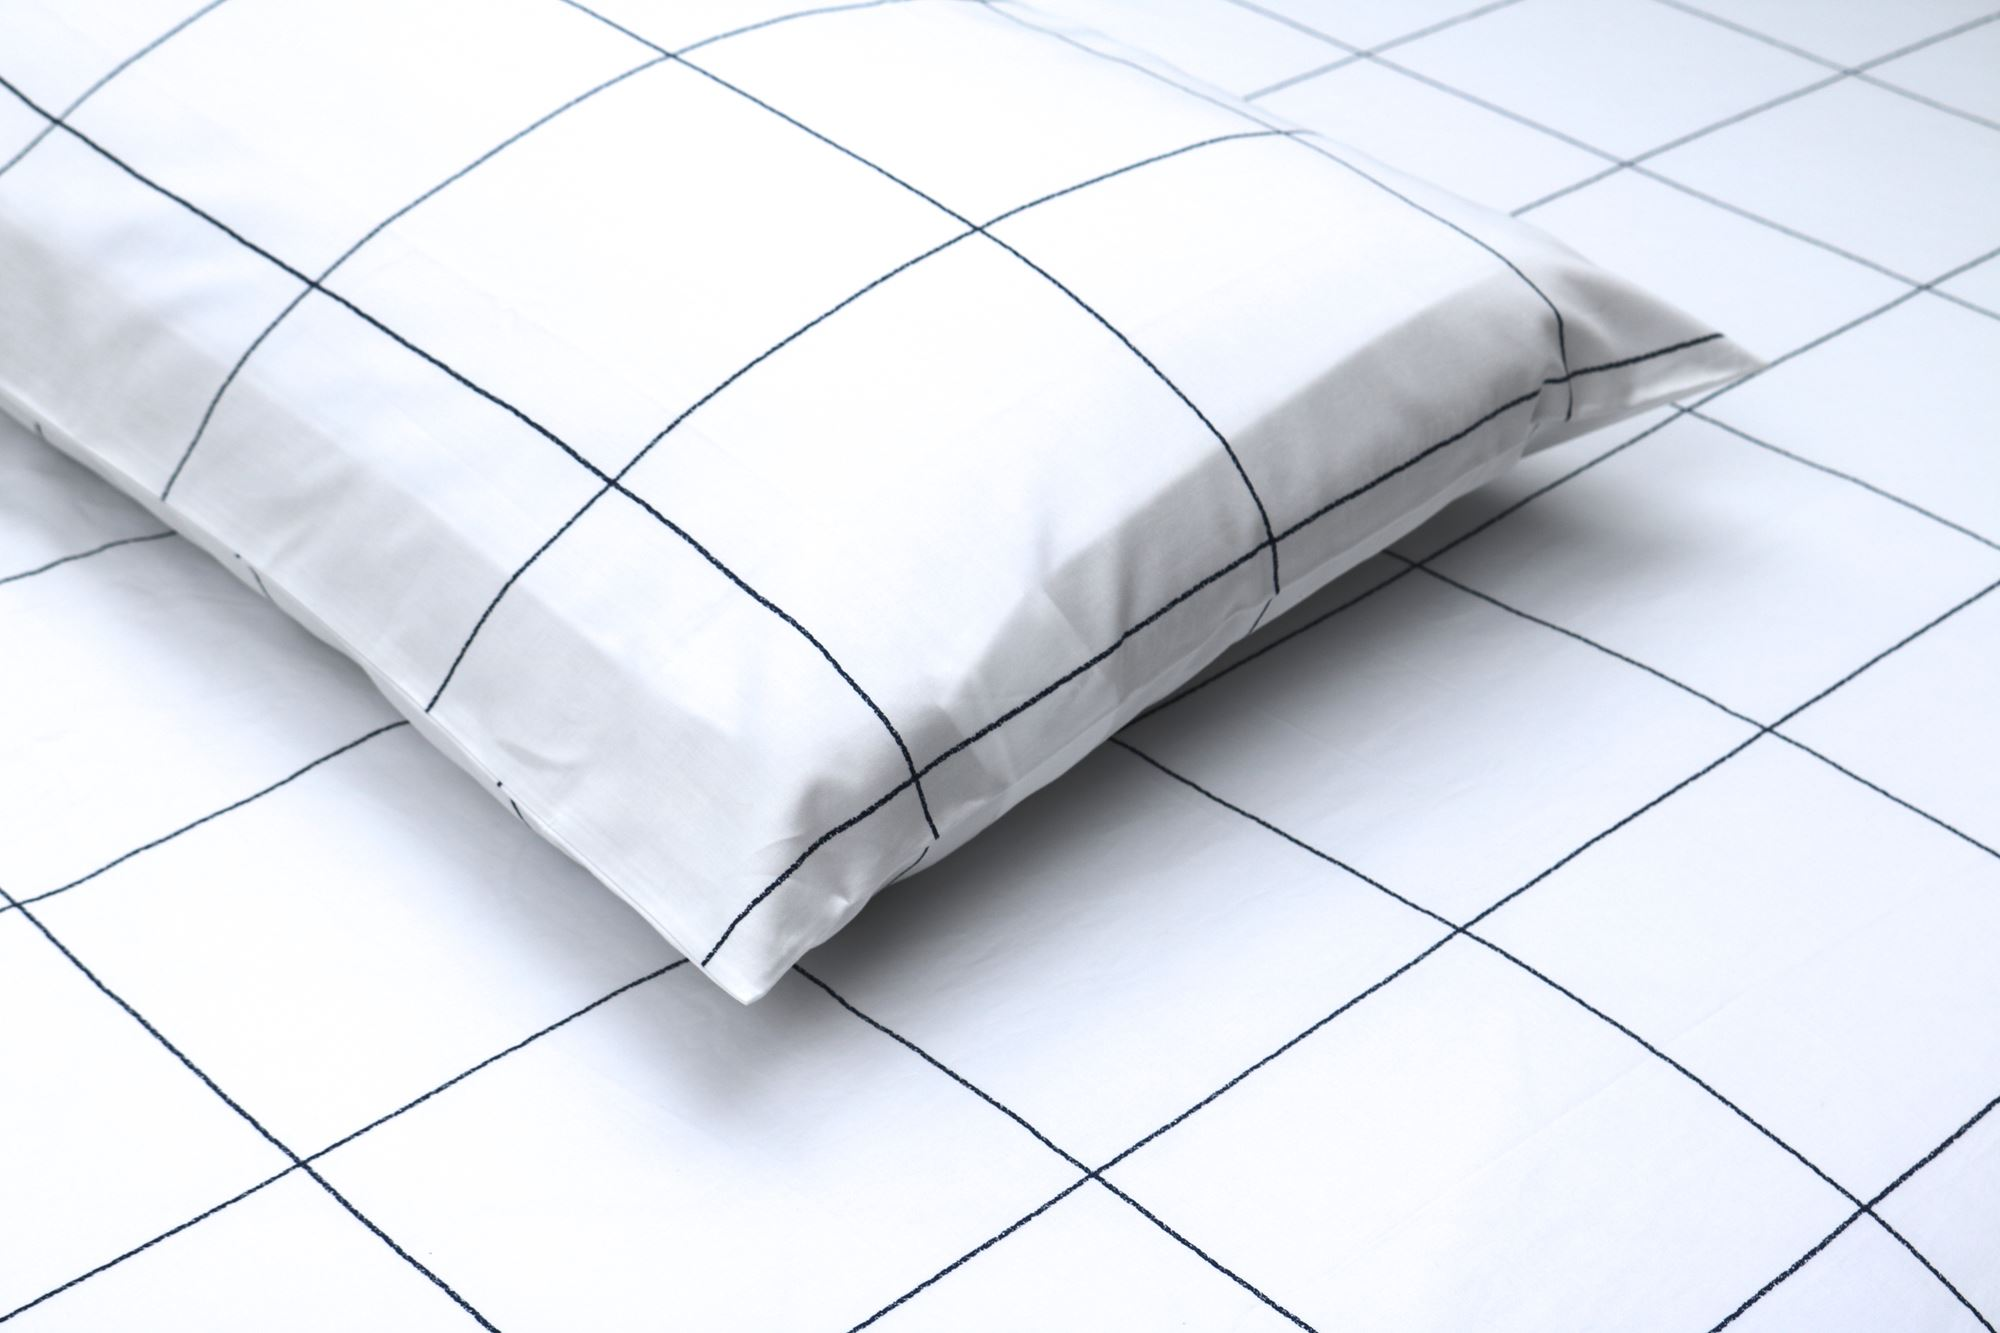 Windowpane Sheet Set from Thread Experiment